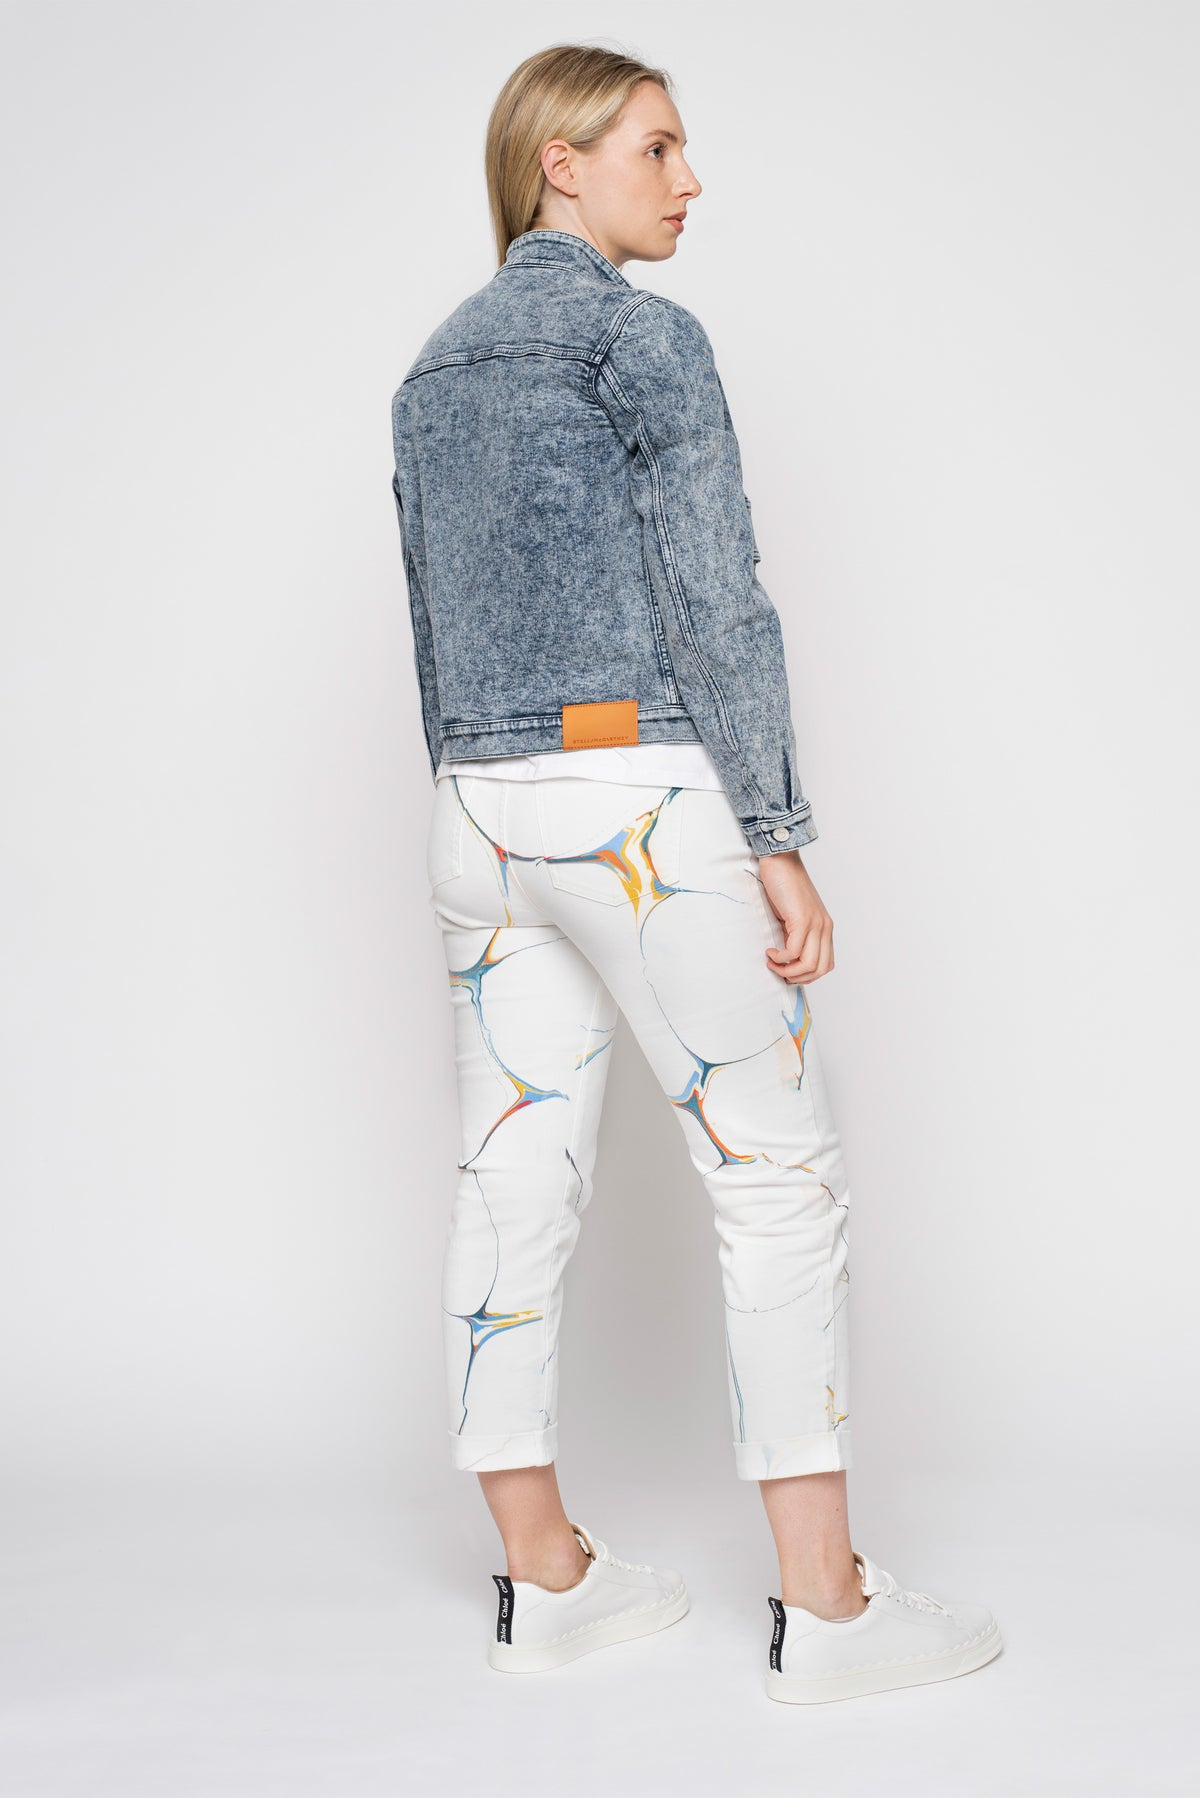 Stella McCartney Salt Wash Denim Jacket